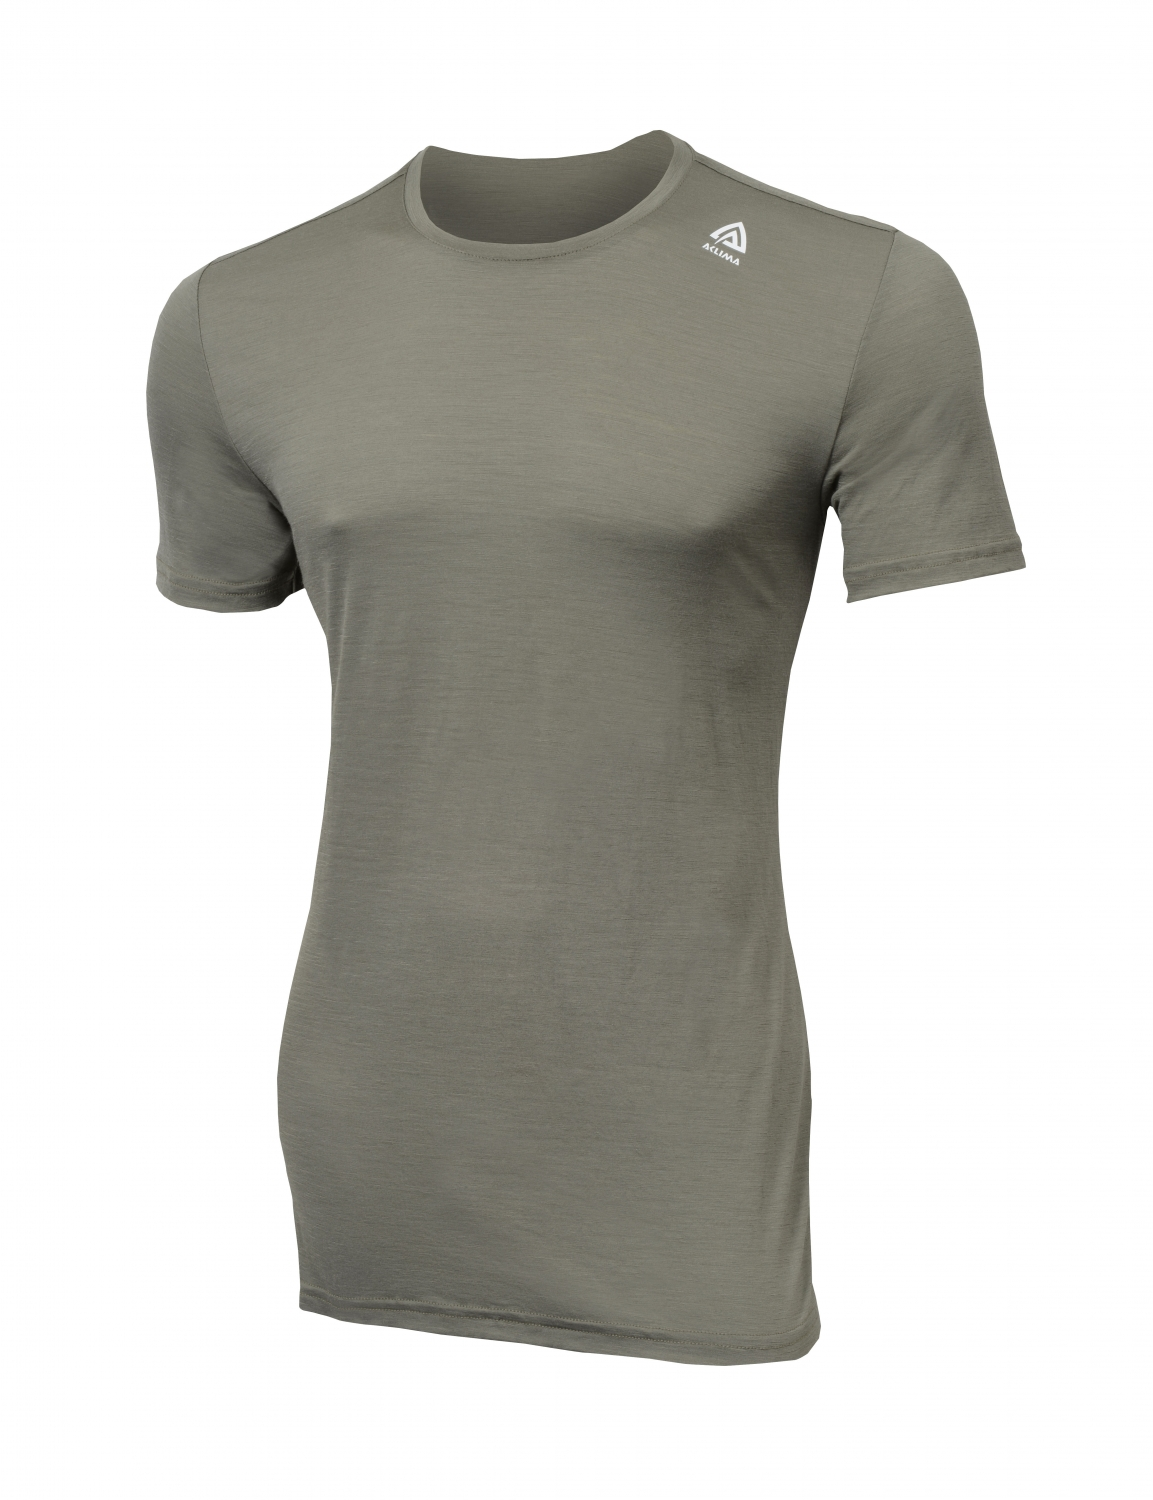 Image of   Aclima Lightwool T-Shirt Ranger Green S